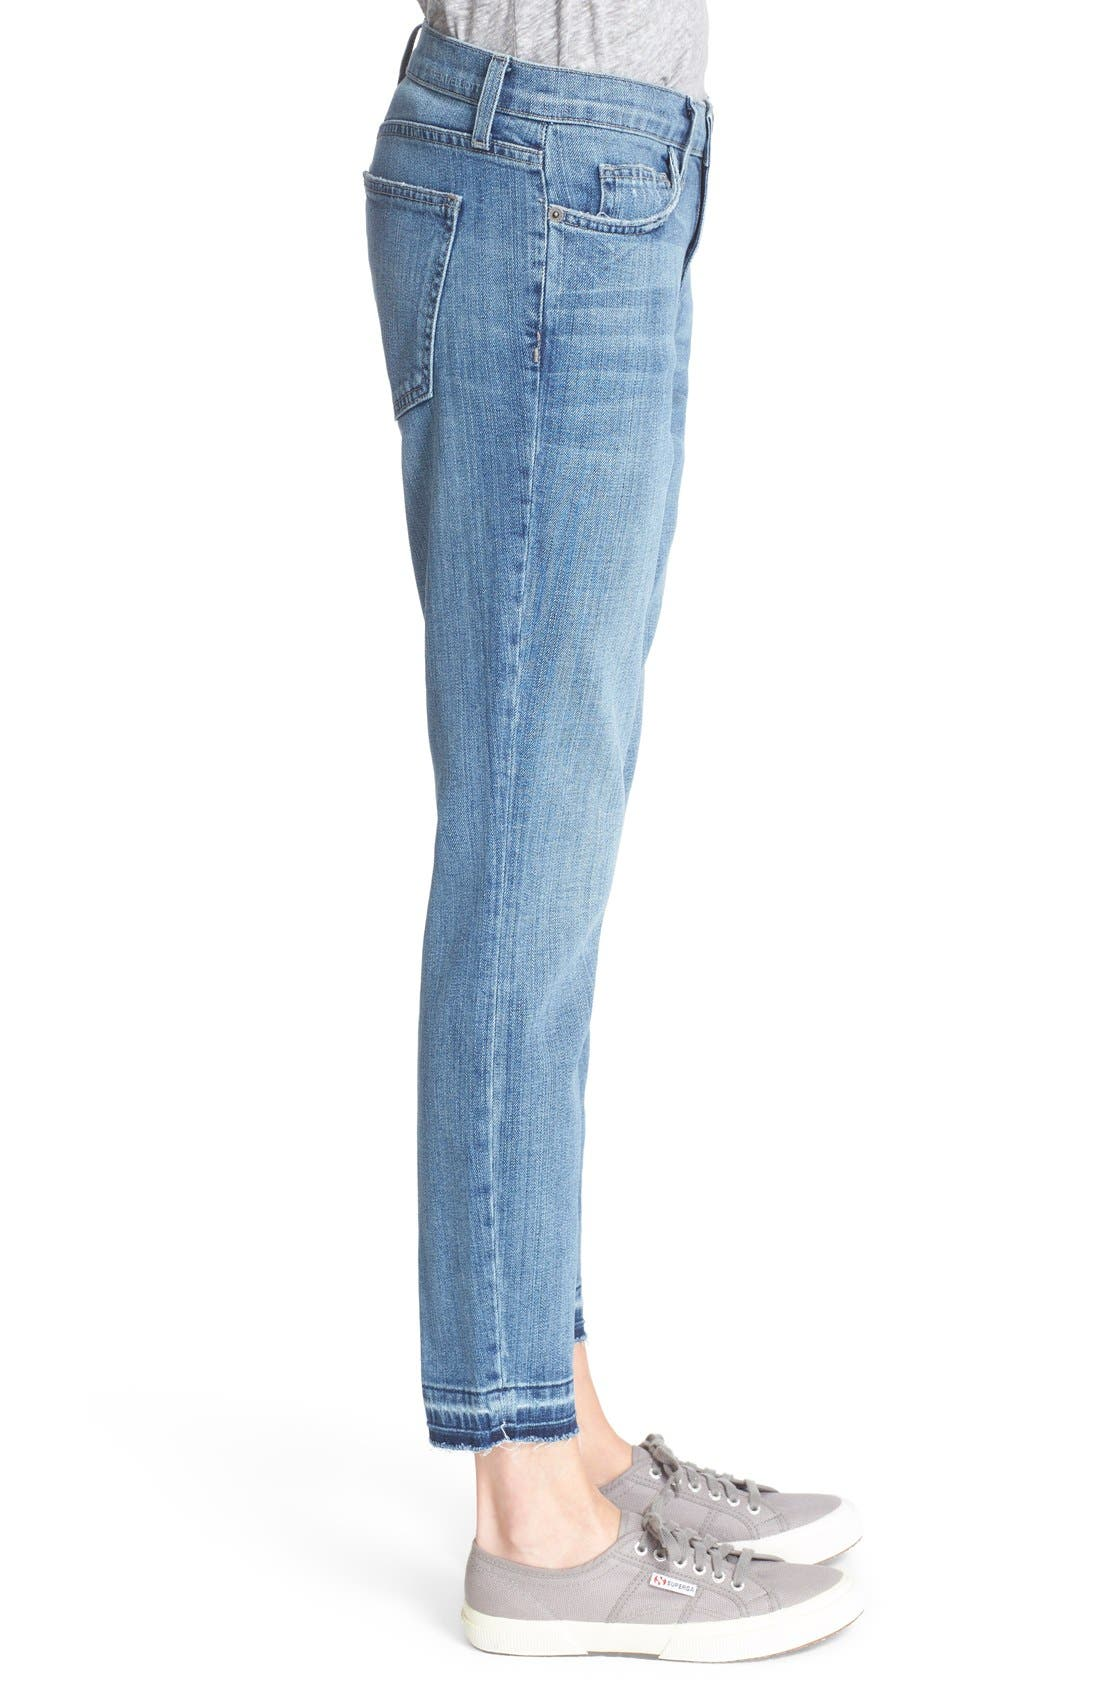 Alternate Image 3  - Current/Elliott 'The Stiletto' Stretch Jeans (Amour Released Hem)